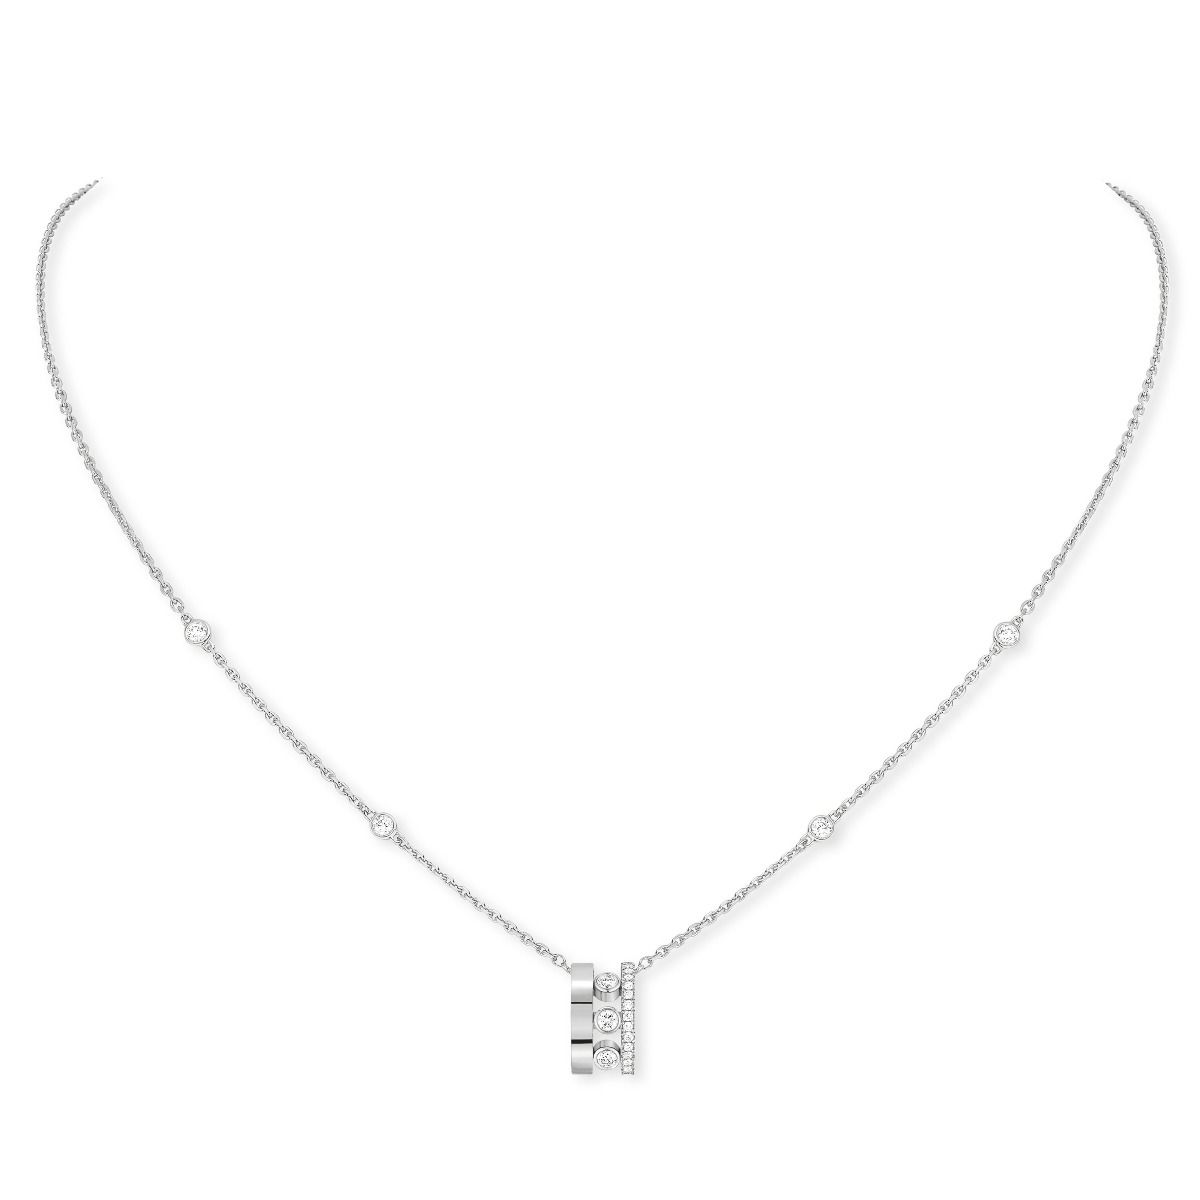 Move Romane Pendant Necklace - White Gold